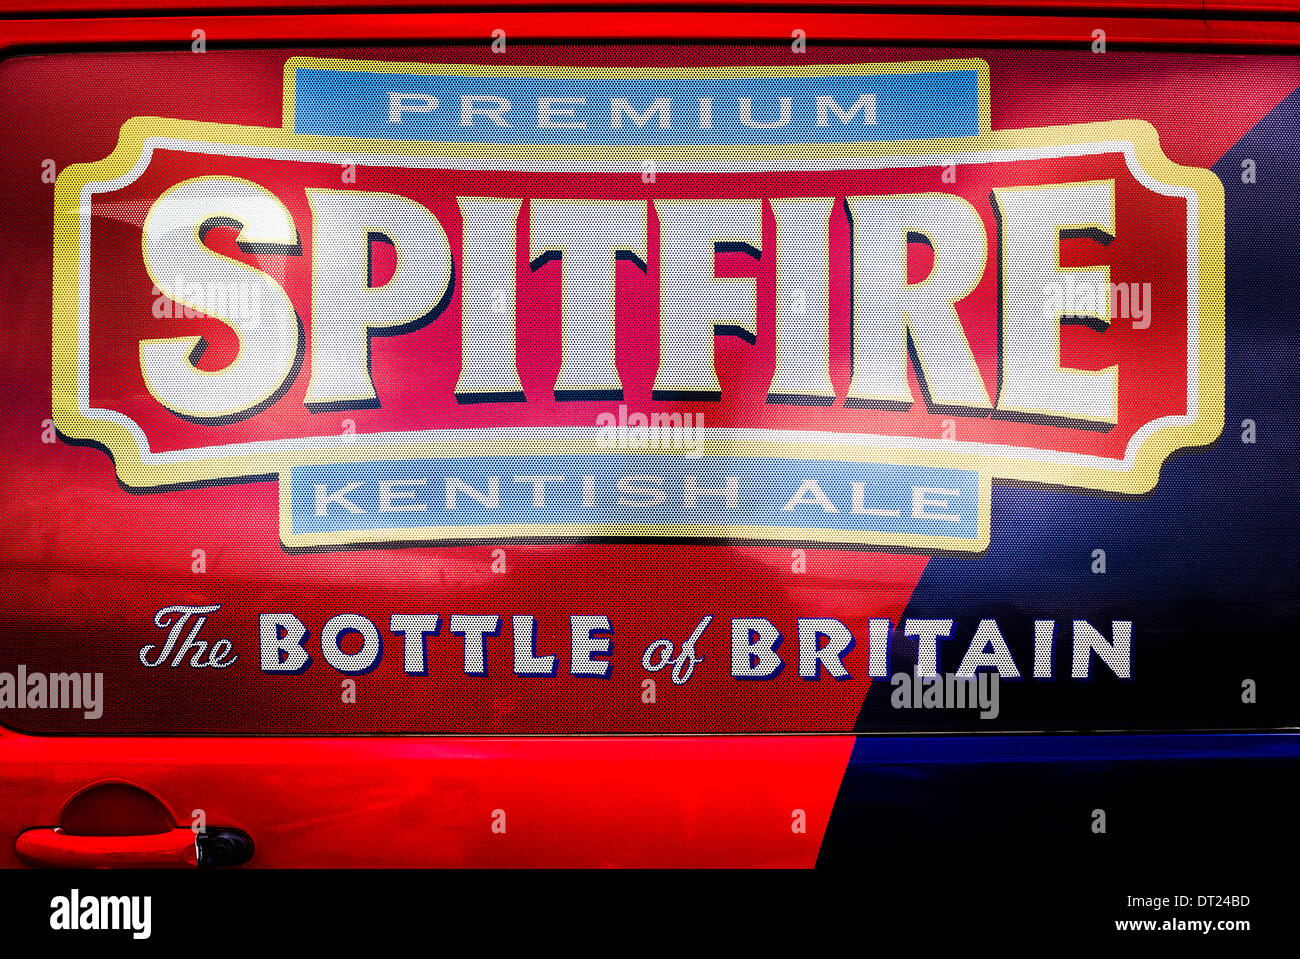 SPITFIRE Kentish ale promoted at an air show in UK on side of van serving drinks to visitors - Stock Image